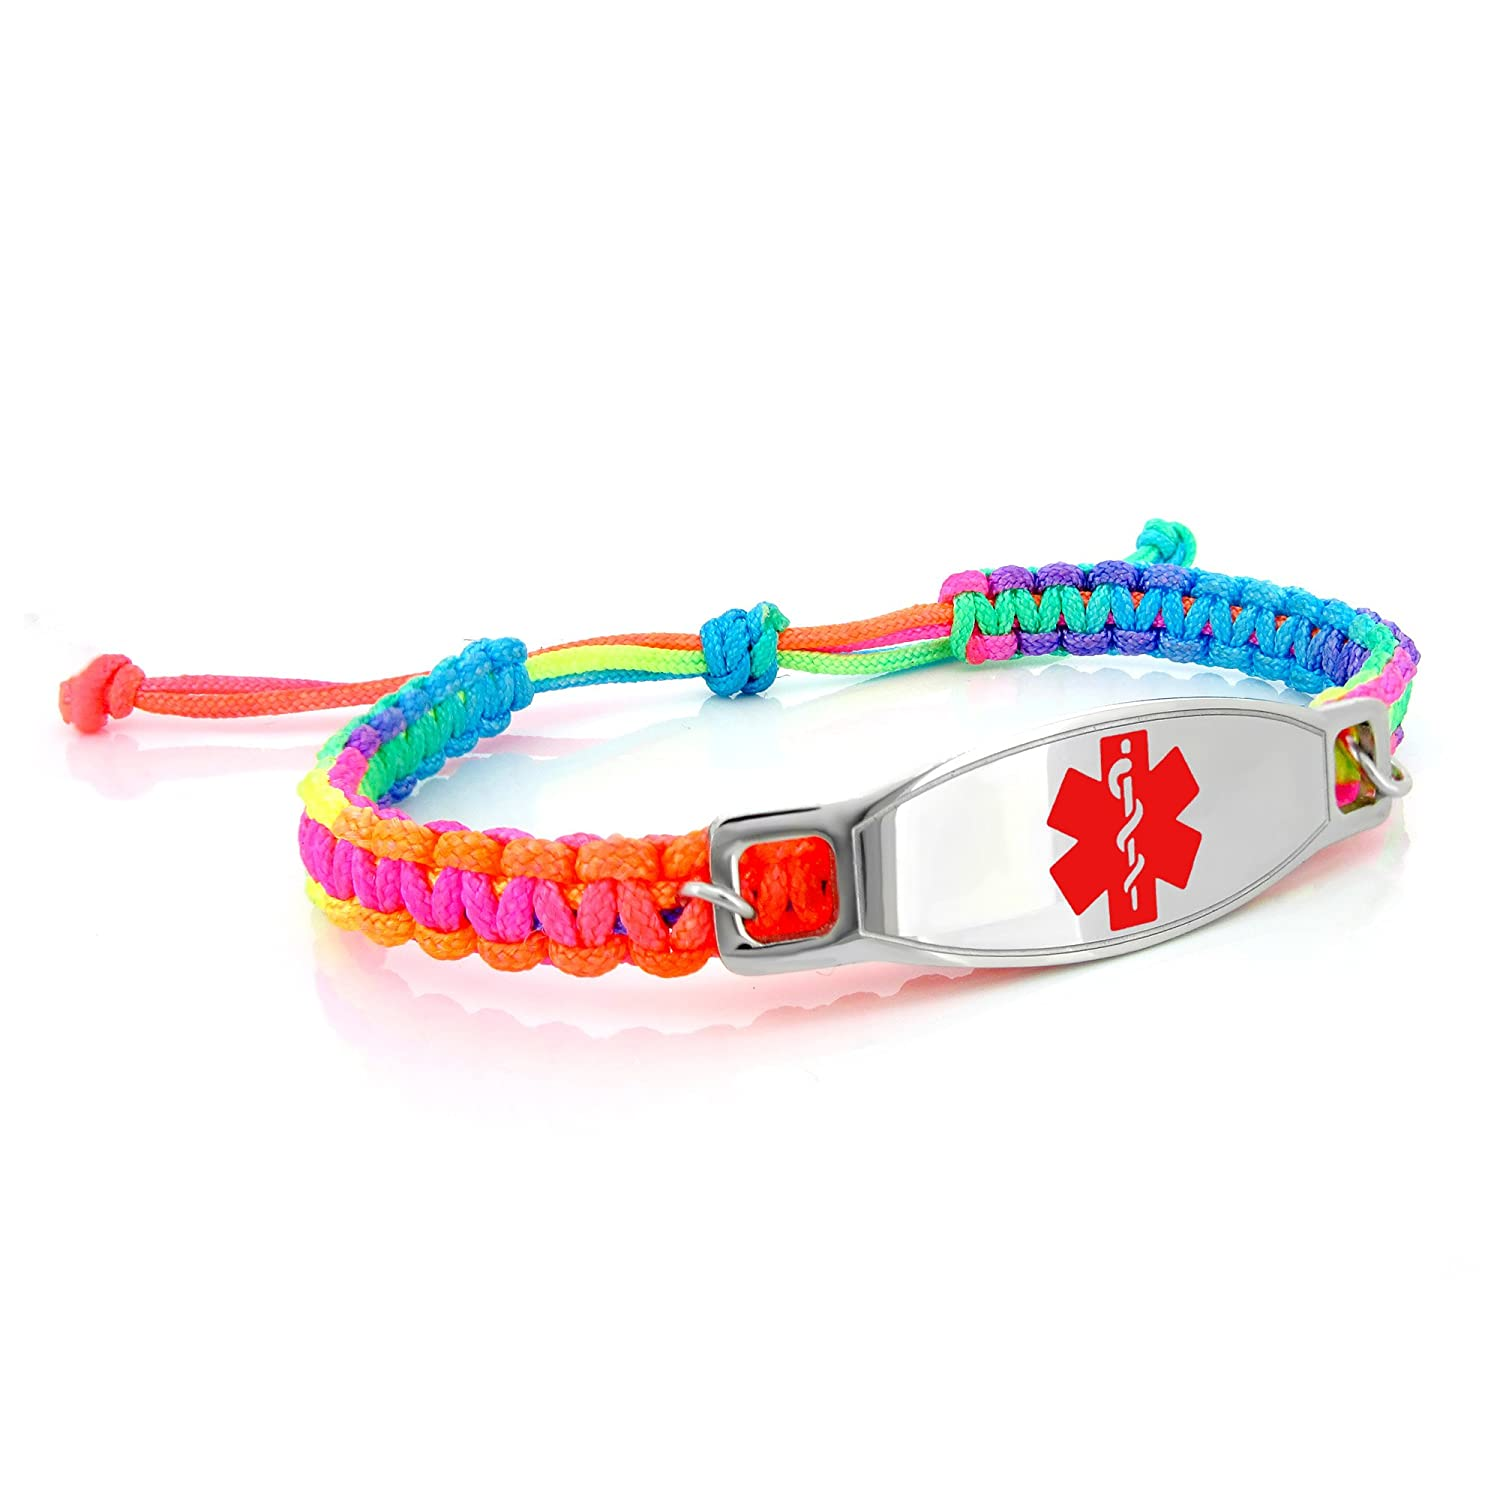 MedicEngraved Kids Rainbow Macrame Medical ID Bracelet with Surgical 316L Stainless Steel Bright Colour Enamel Medical Tag - Adjustable 5.5-8 inch - Customized Medical Engraving Included